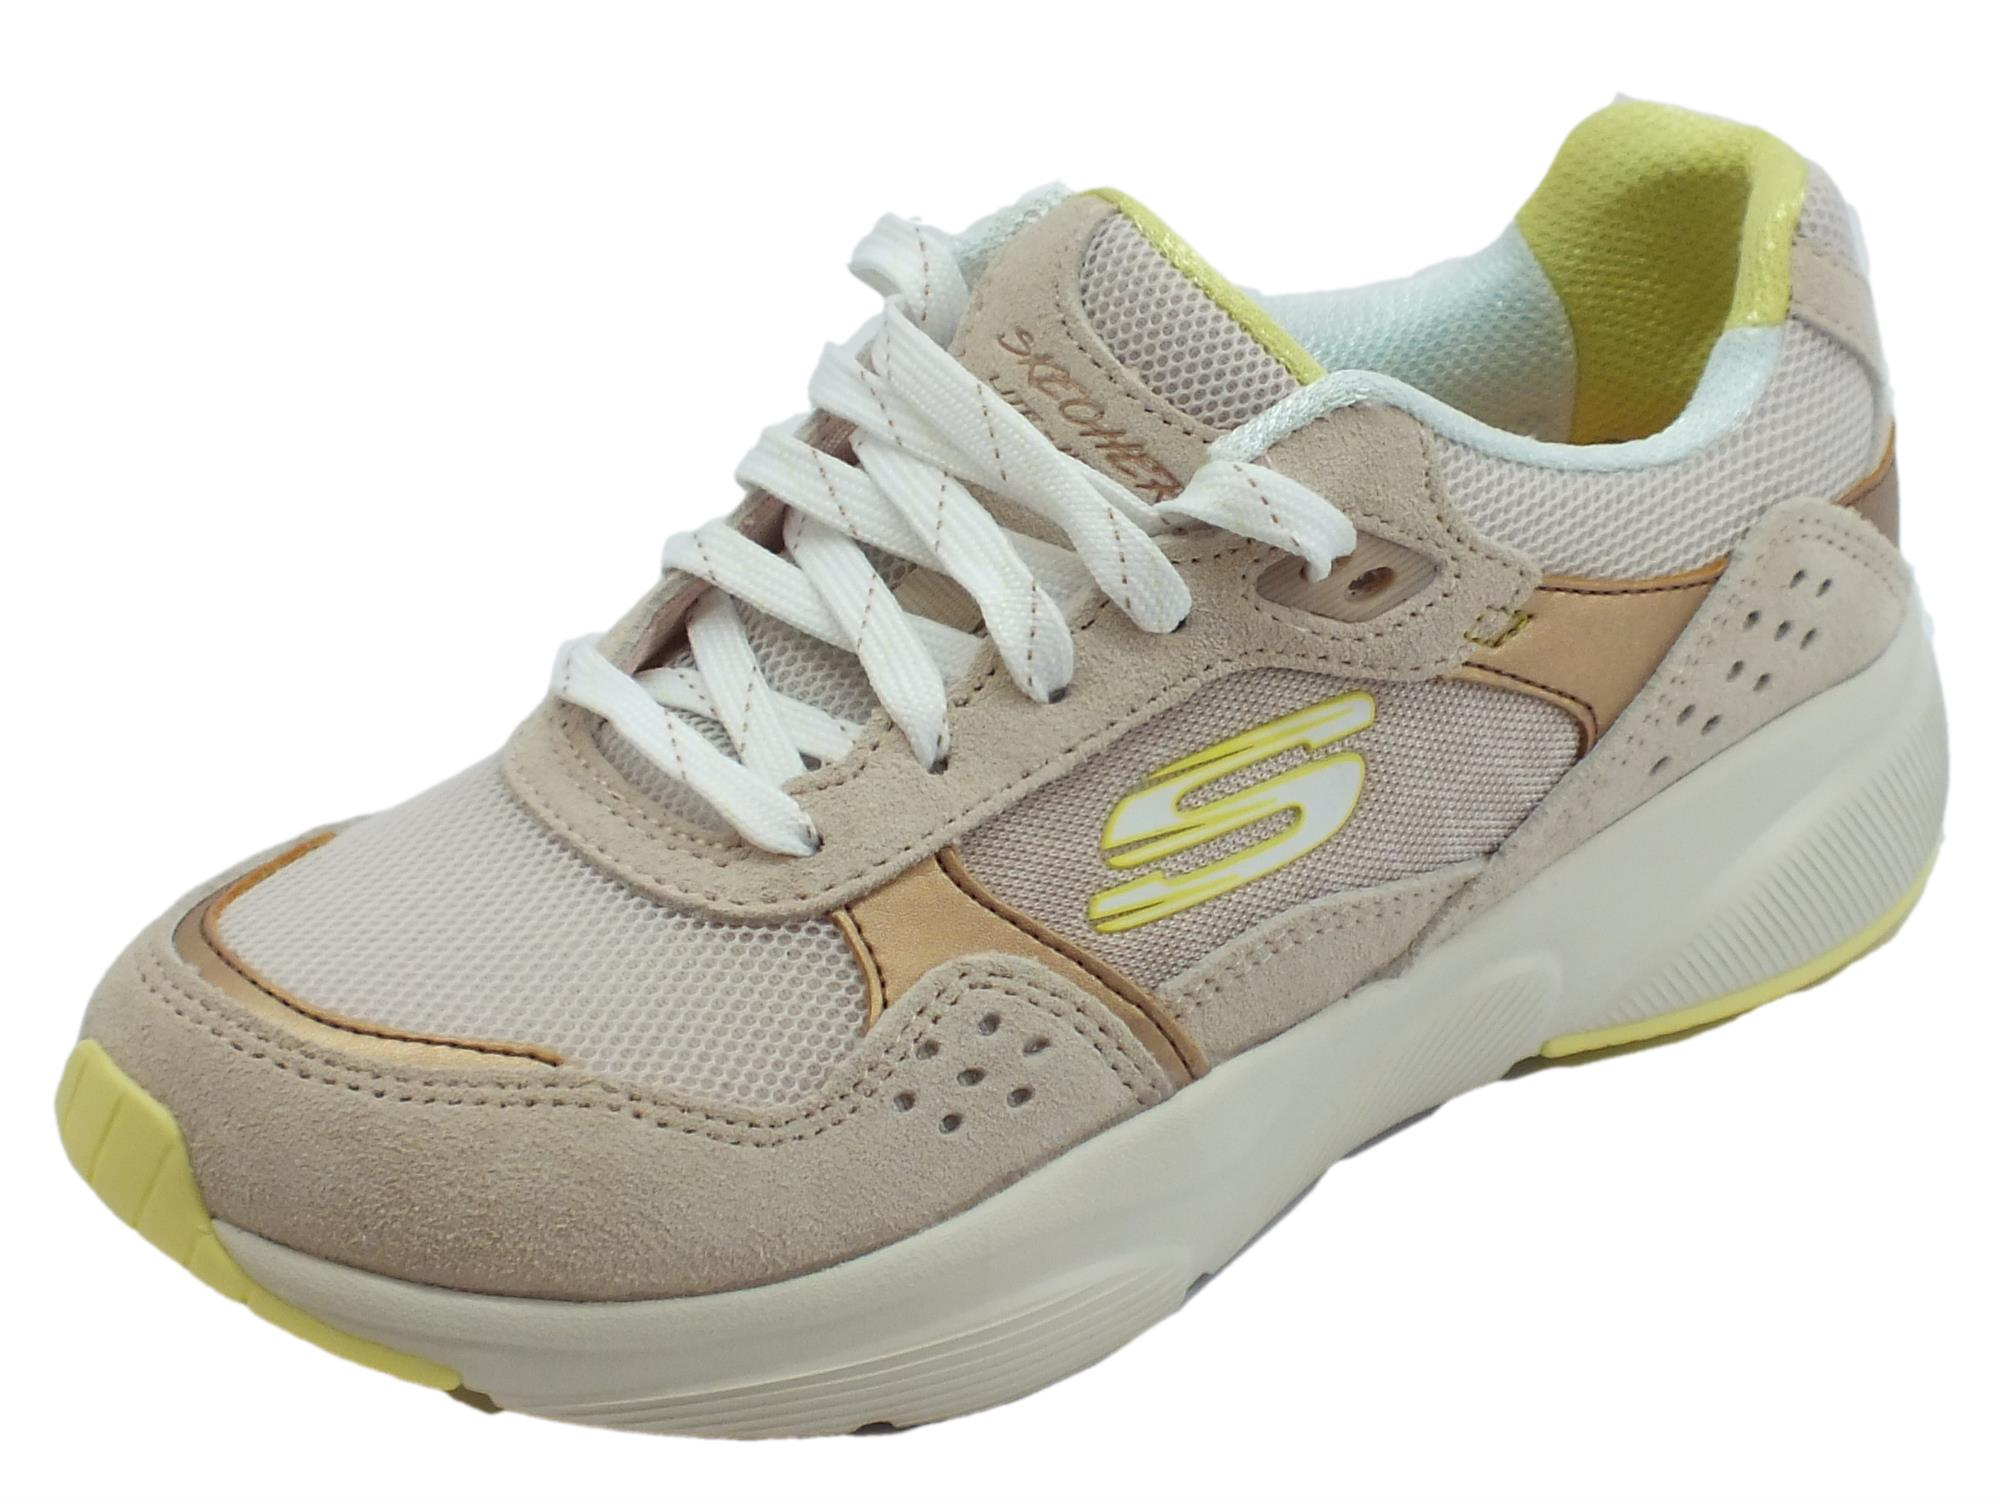 Skechers Meridian No Worries Scarpe Sportive Donna taupe - Vitiello ... 2b7be69332d